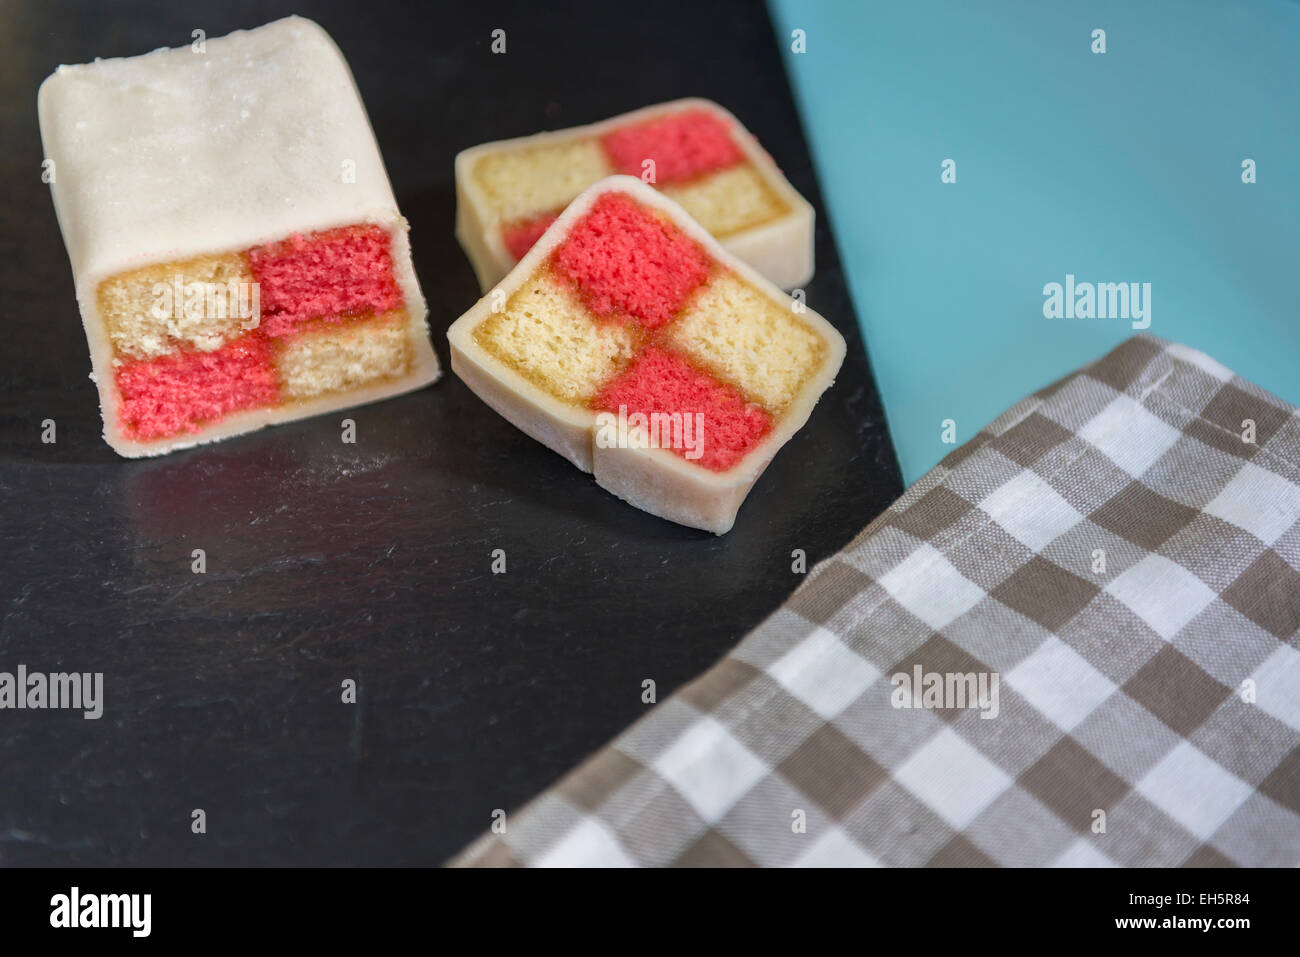 Closeup of a Battenberg cake with a brown checked napkin in the foreground - Stock Image